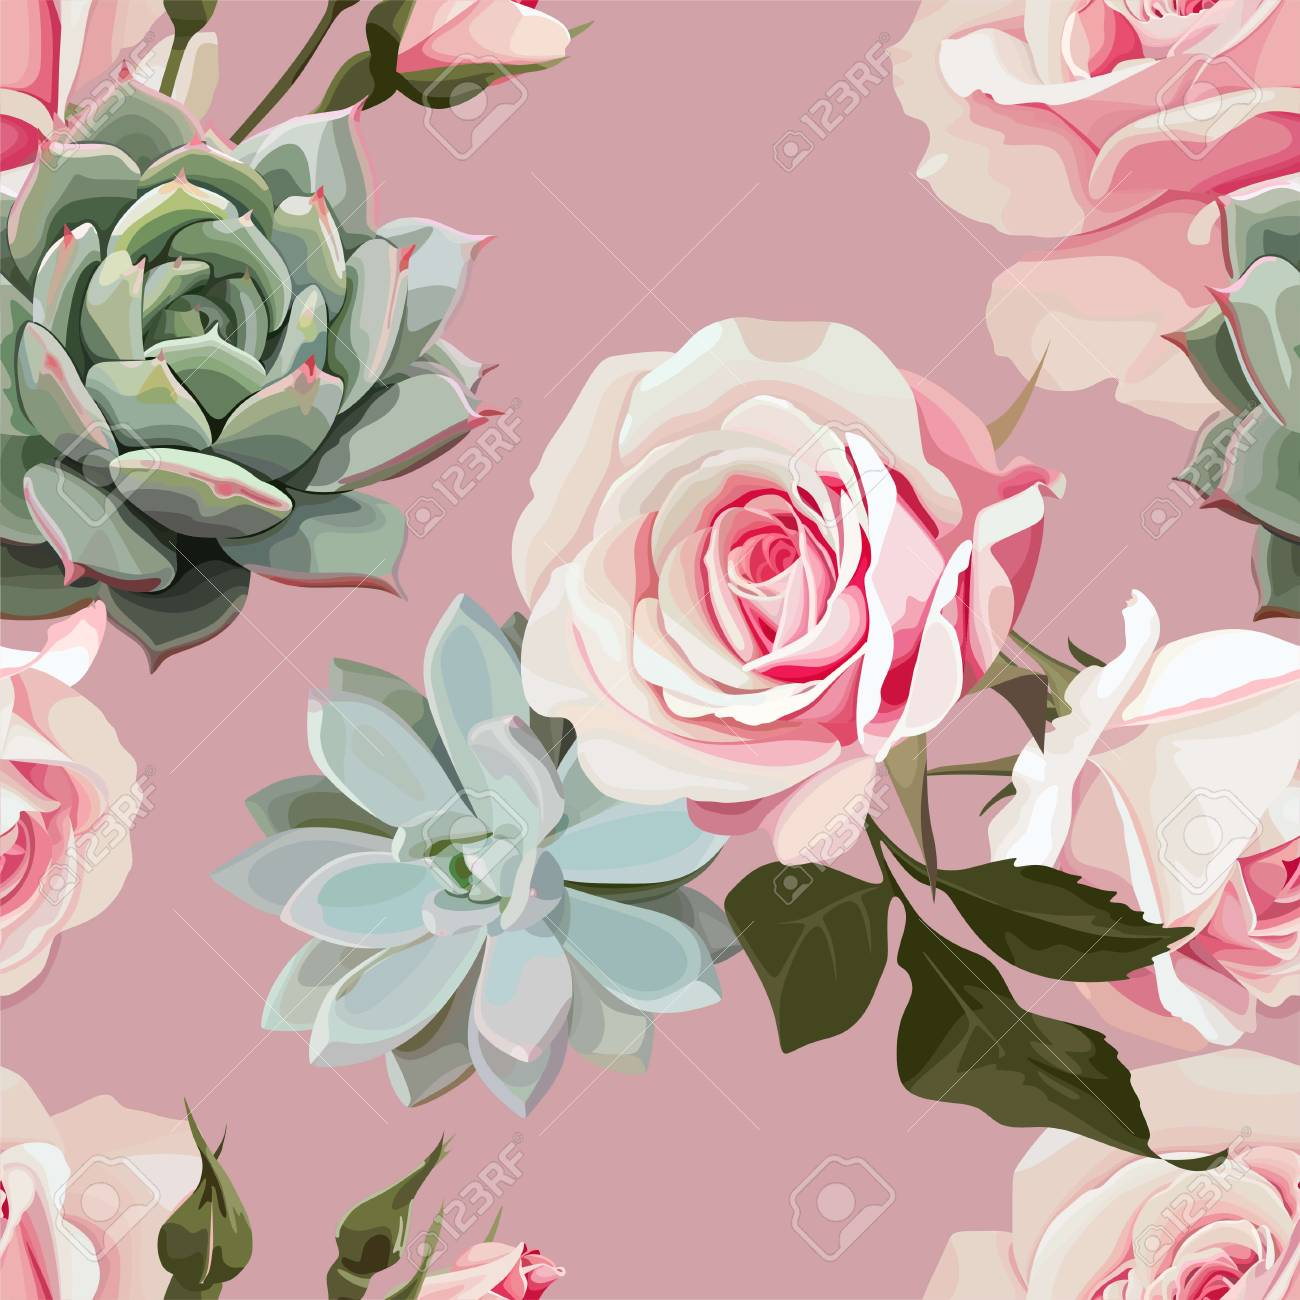 Succulents And Roses Vector Seamless Pattern Of Floral Ornament